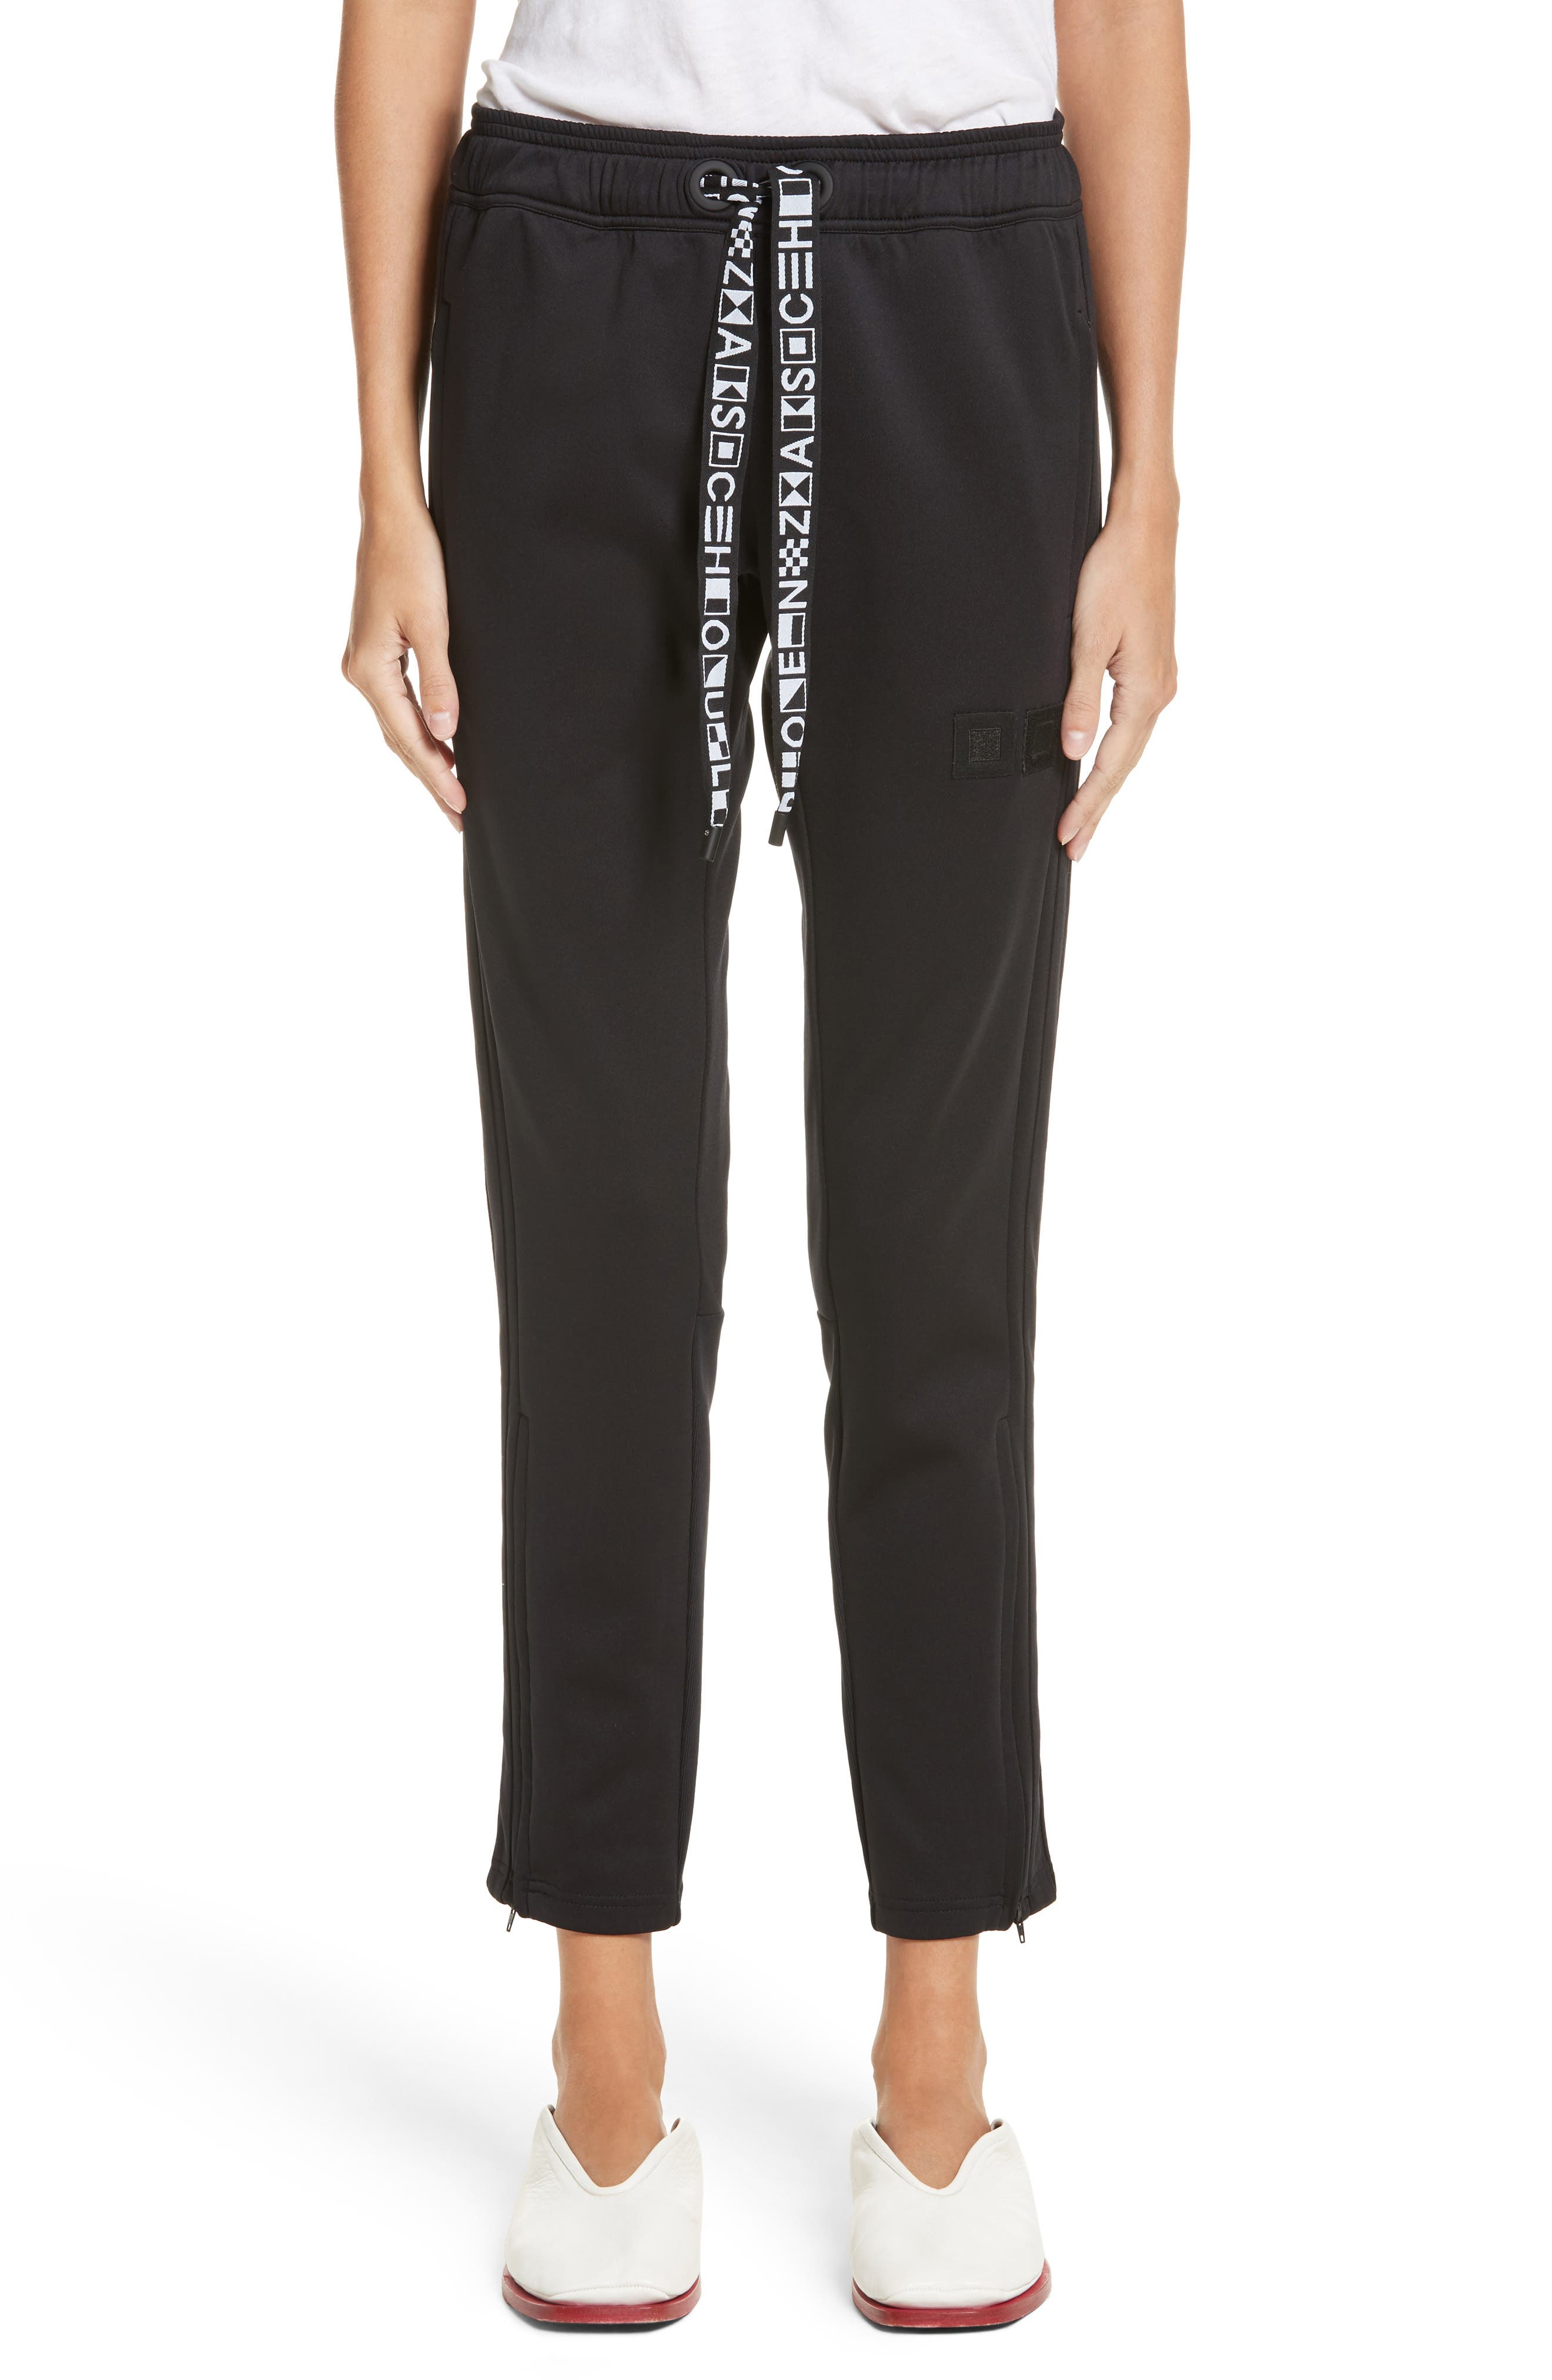 Alternate Image 1 Selected - Proenza Schouler PSWL Jersey Track Pants